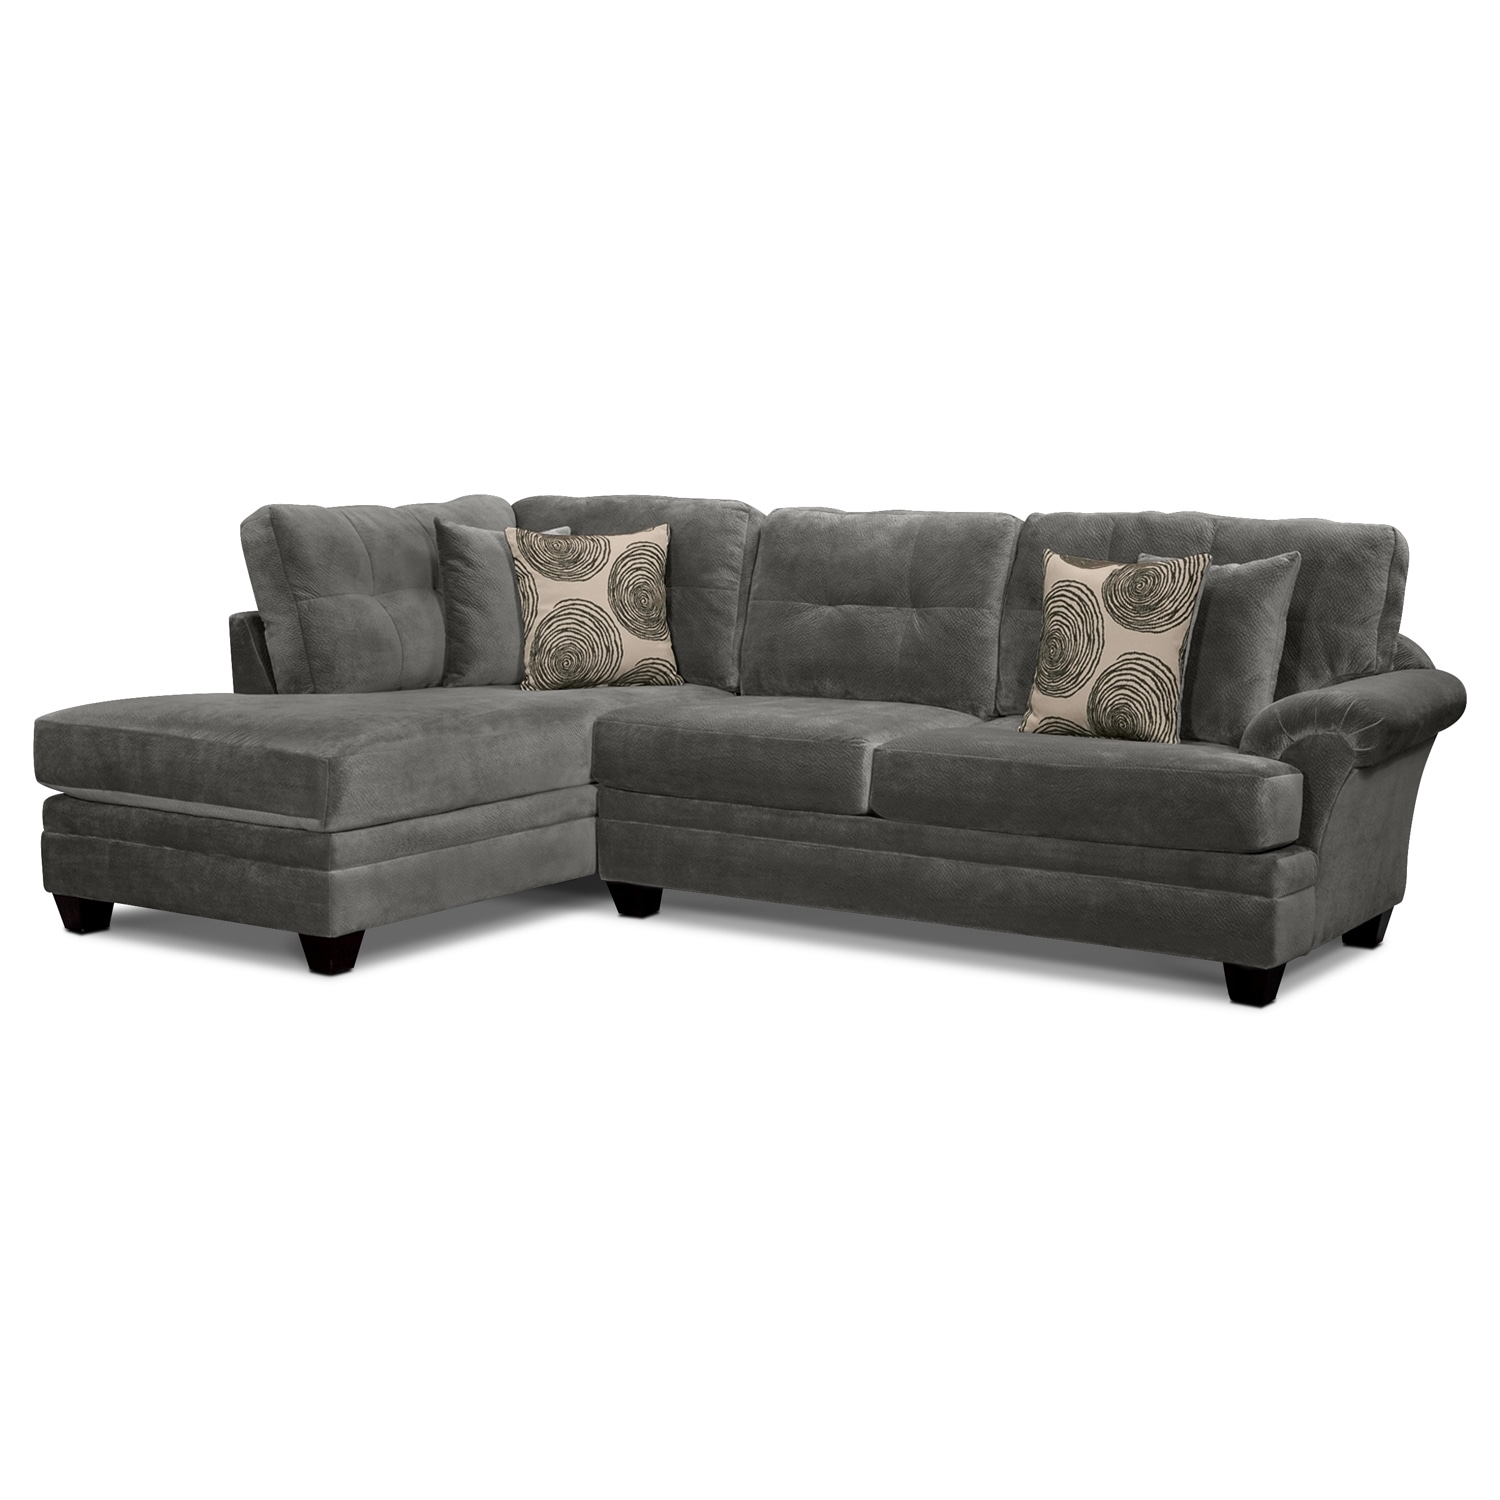 Cordelle 2 Piece Sectional With Left Facing Chaise – Gray | Value For Cosmos Grey 2 Piece Sectionals With Laf Chaise (Image 6 of 25)